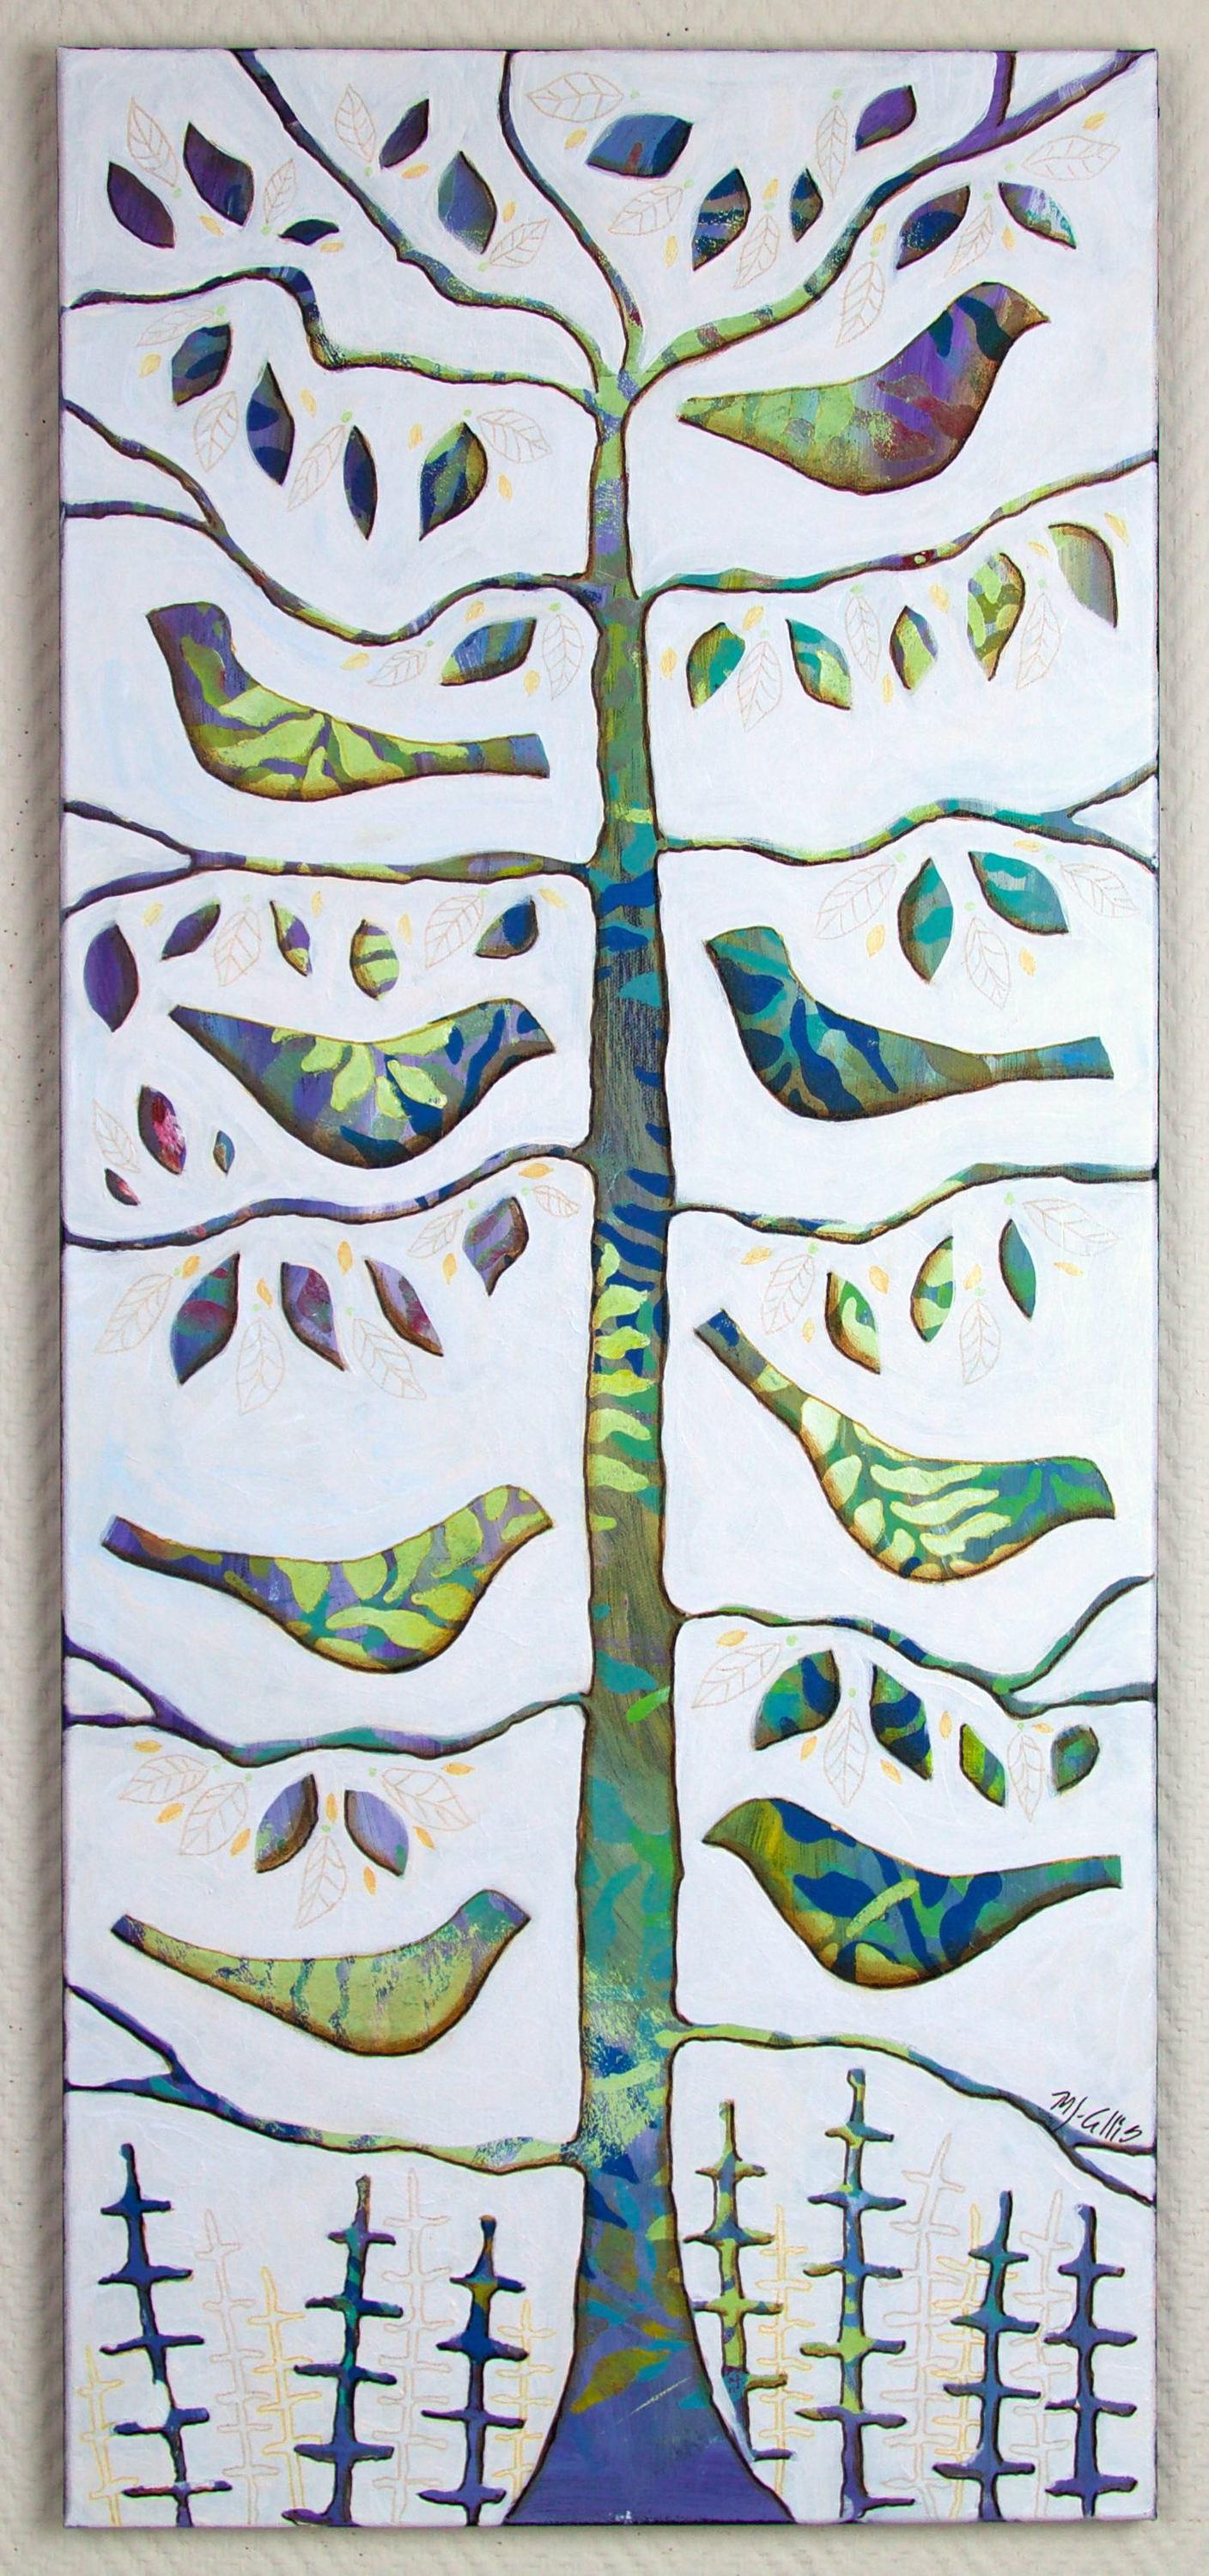 Birds in a tree painting uvqp4o